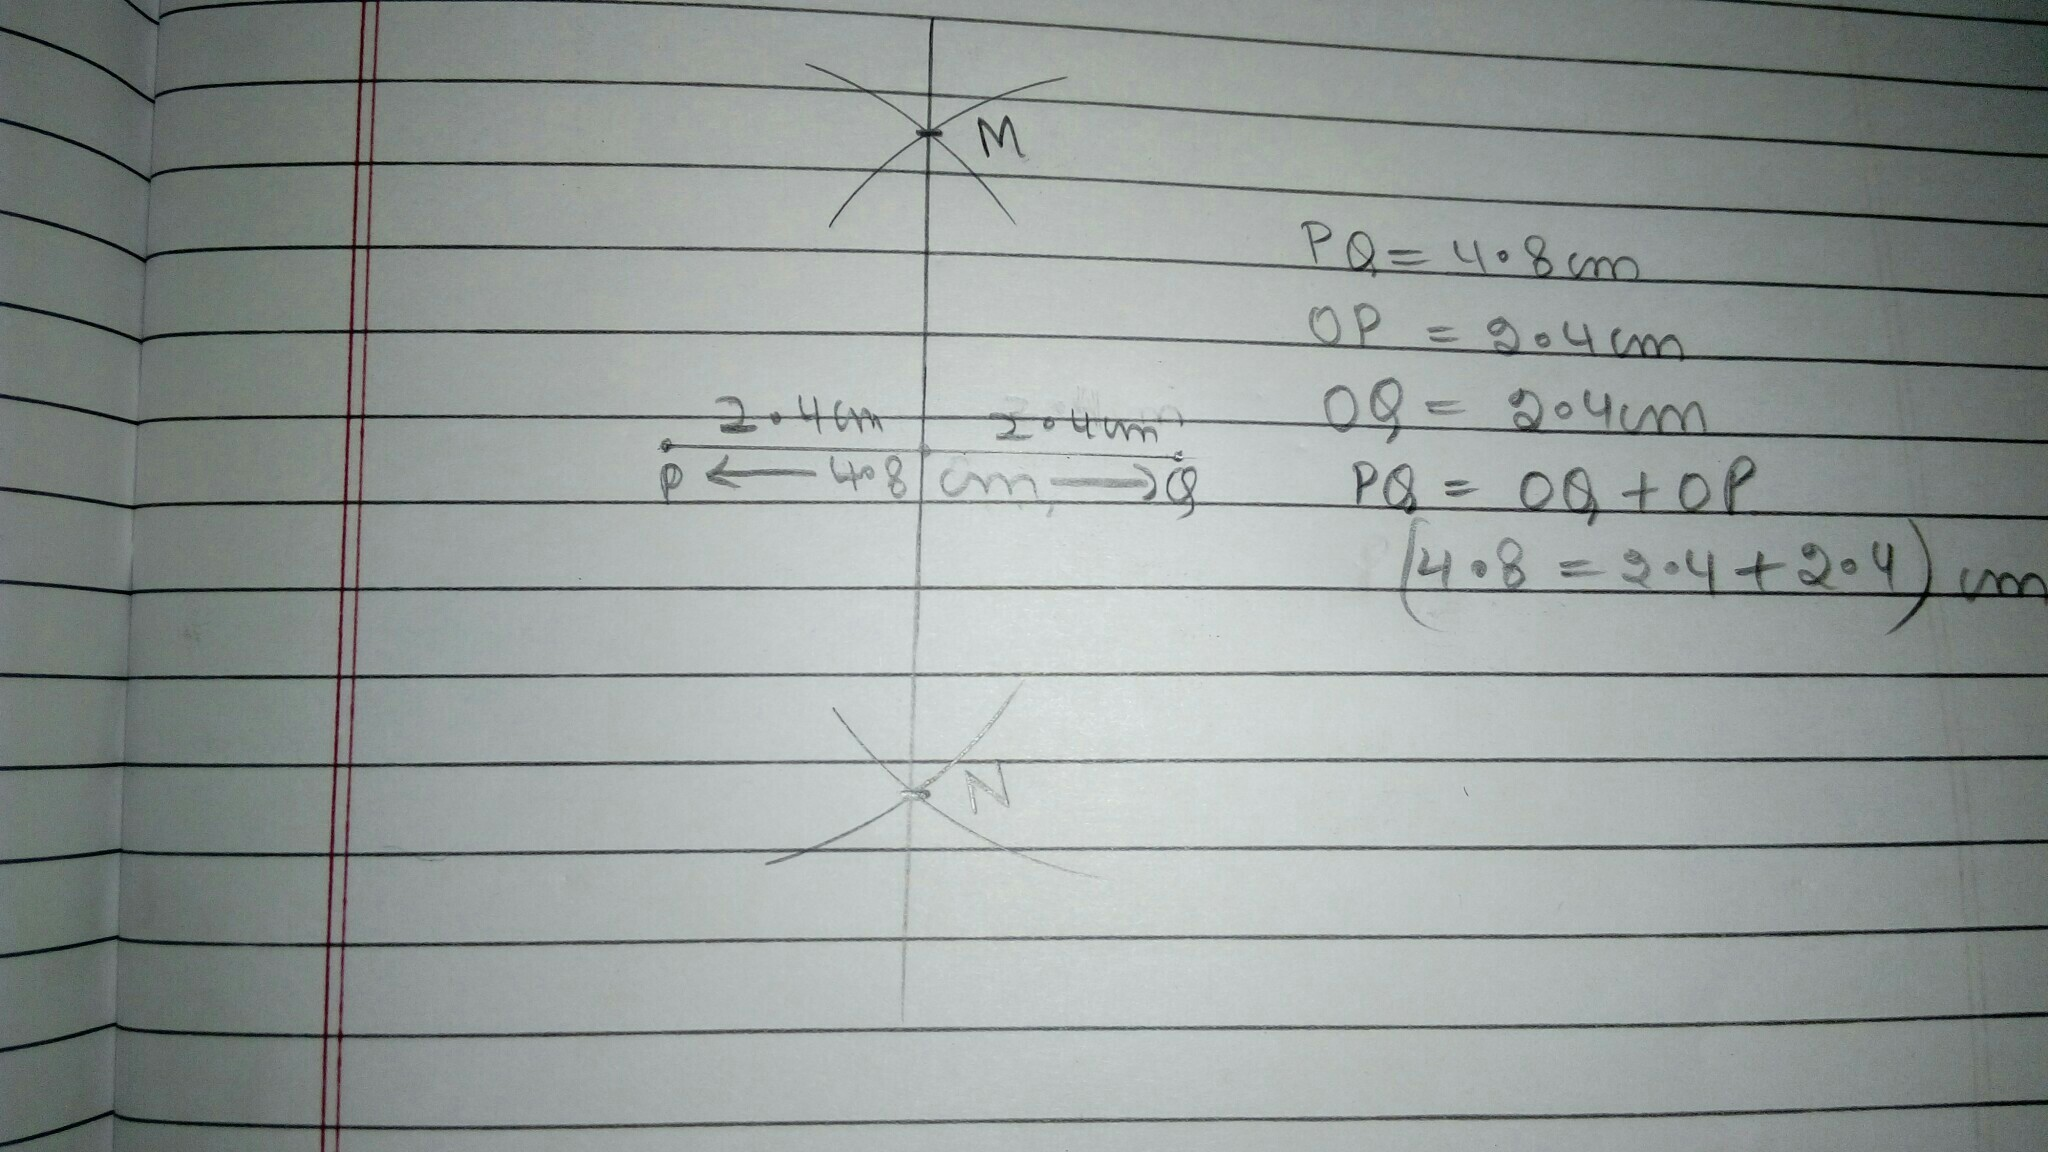 Draw A Line Segment Pq 4 8cm Construct The Perpendicular Bisector Of